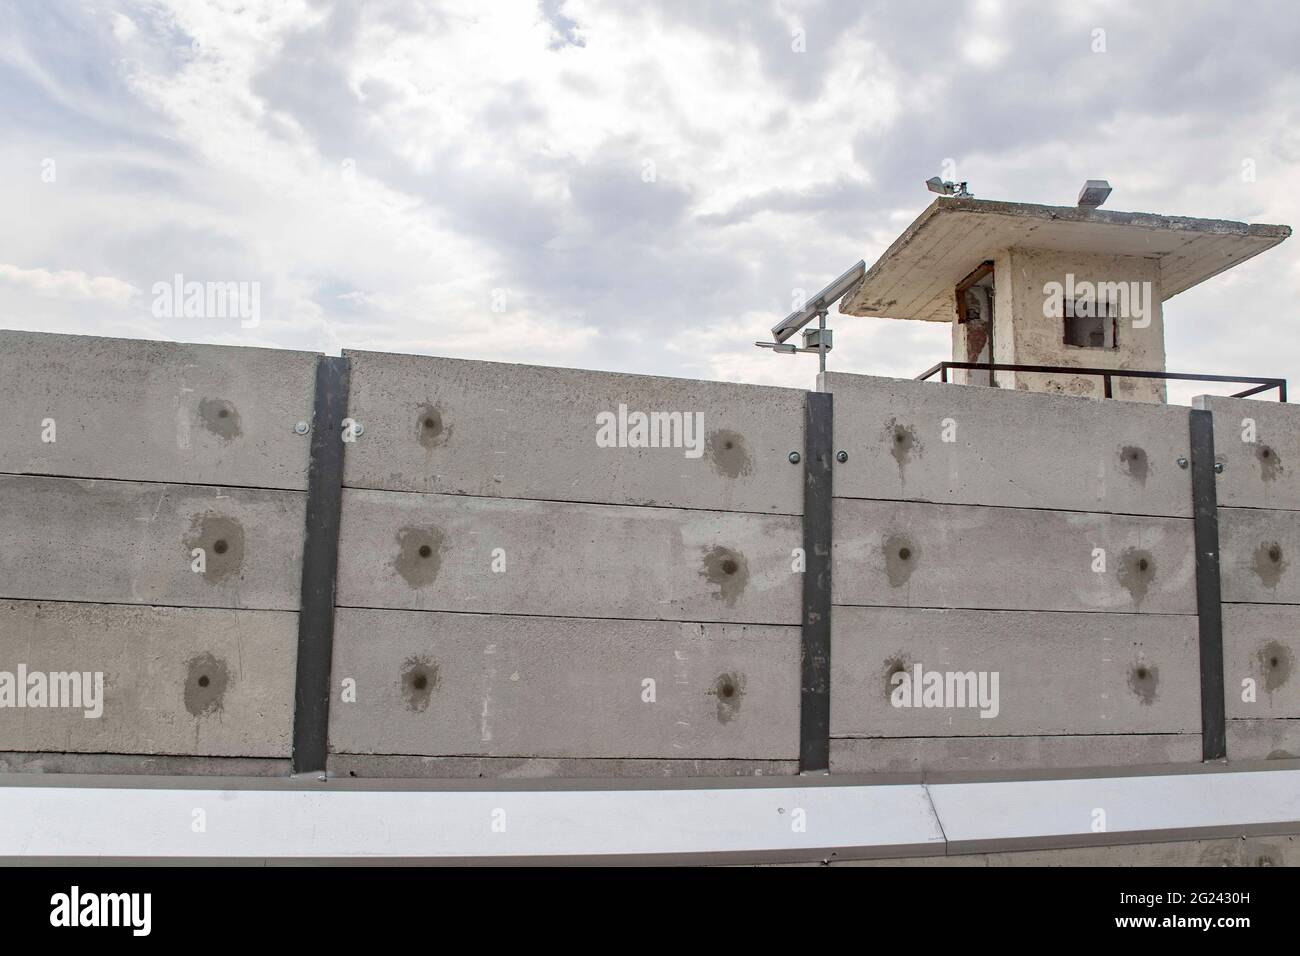 Thessaloniki, Greece. 07th June, 2021. View of a 3-meter grey wall constructed around the Diavata refugee camp near Thessaloniki. High concrete walls are being built around refugee camps on the Greek mainland and the Greek islands, a move Greece claims is for security purposes. Credit: SOPA Images Limited/Alamy Live News Stock Photo